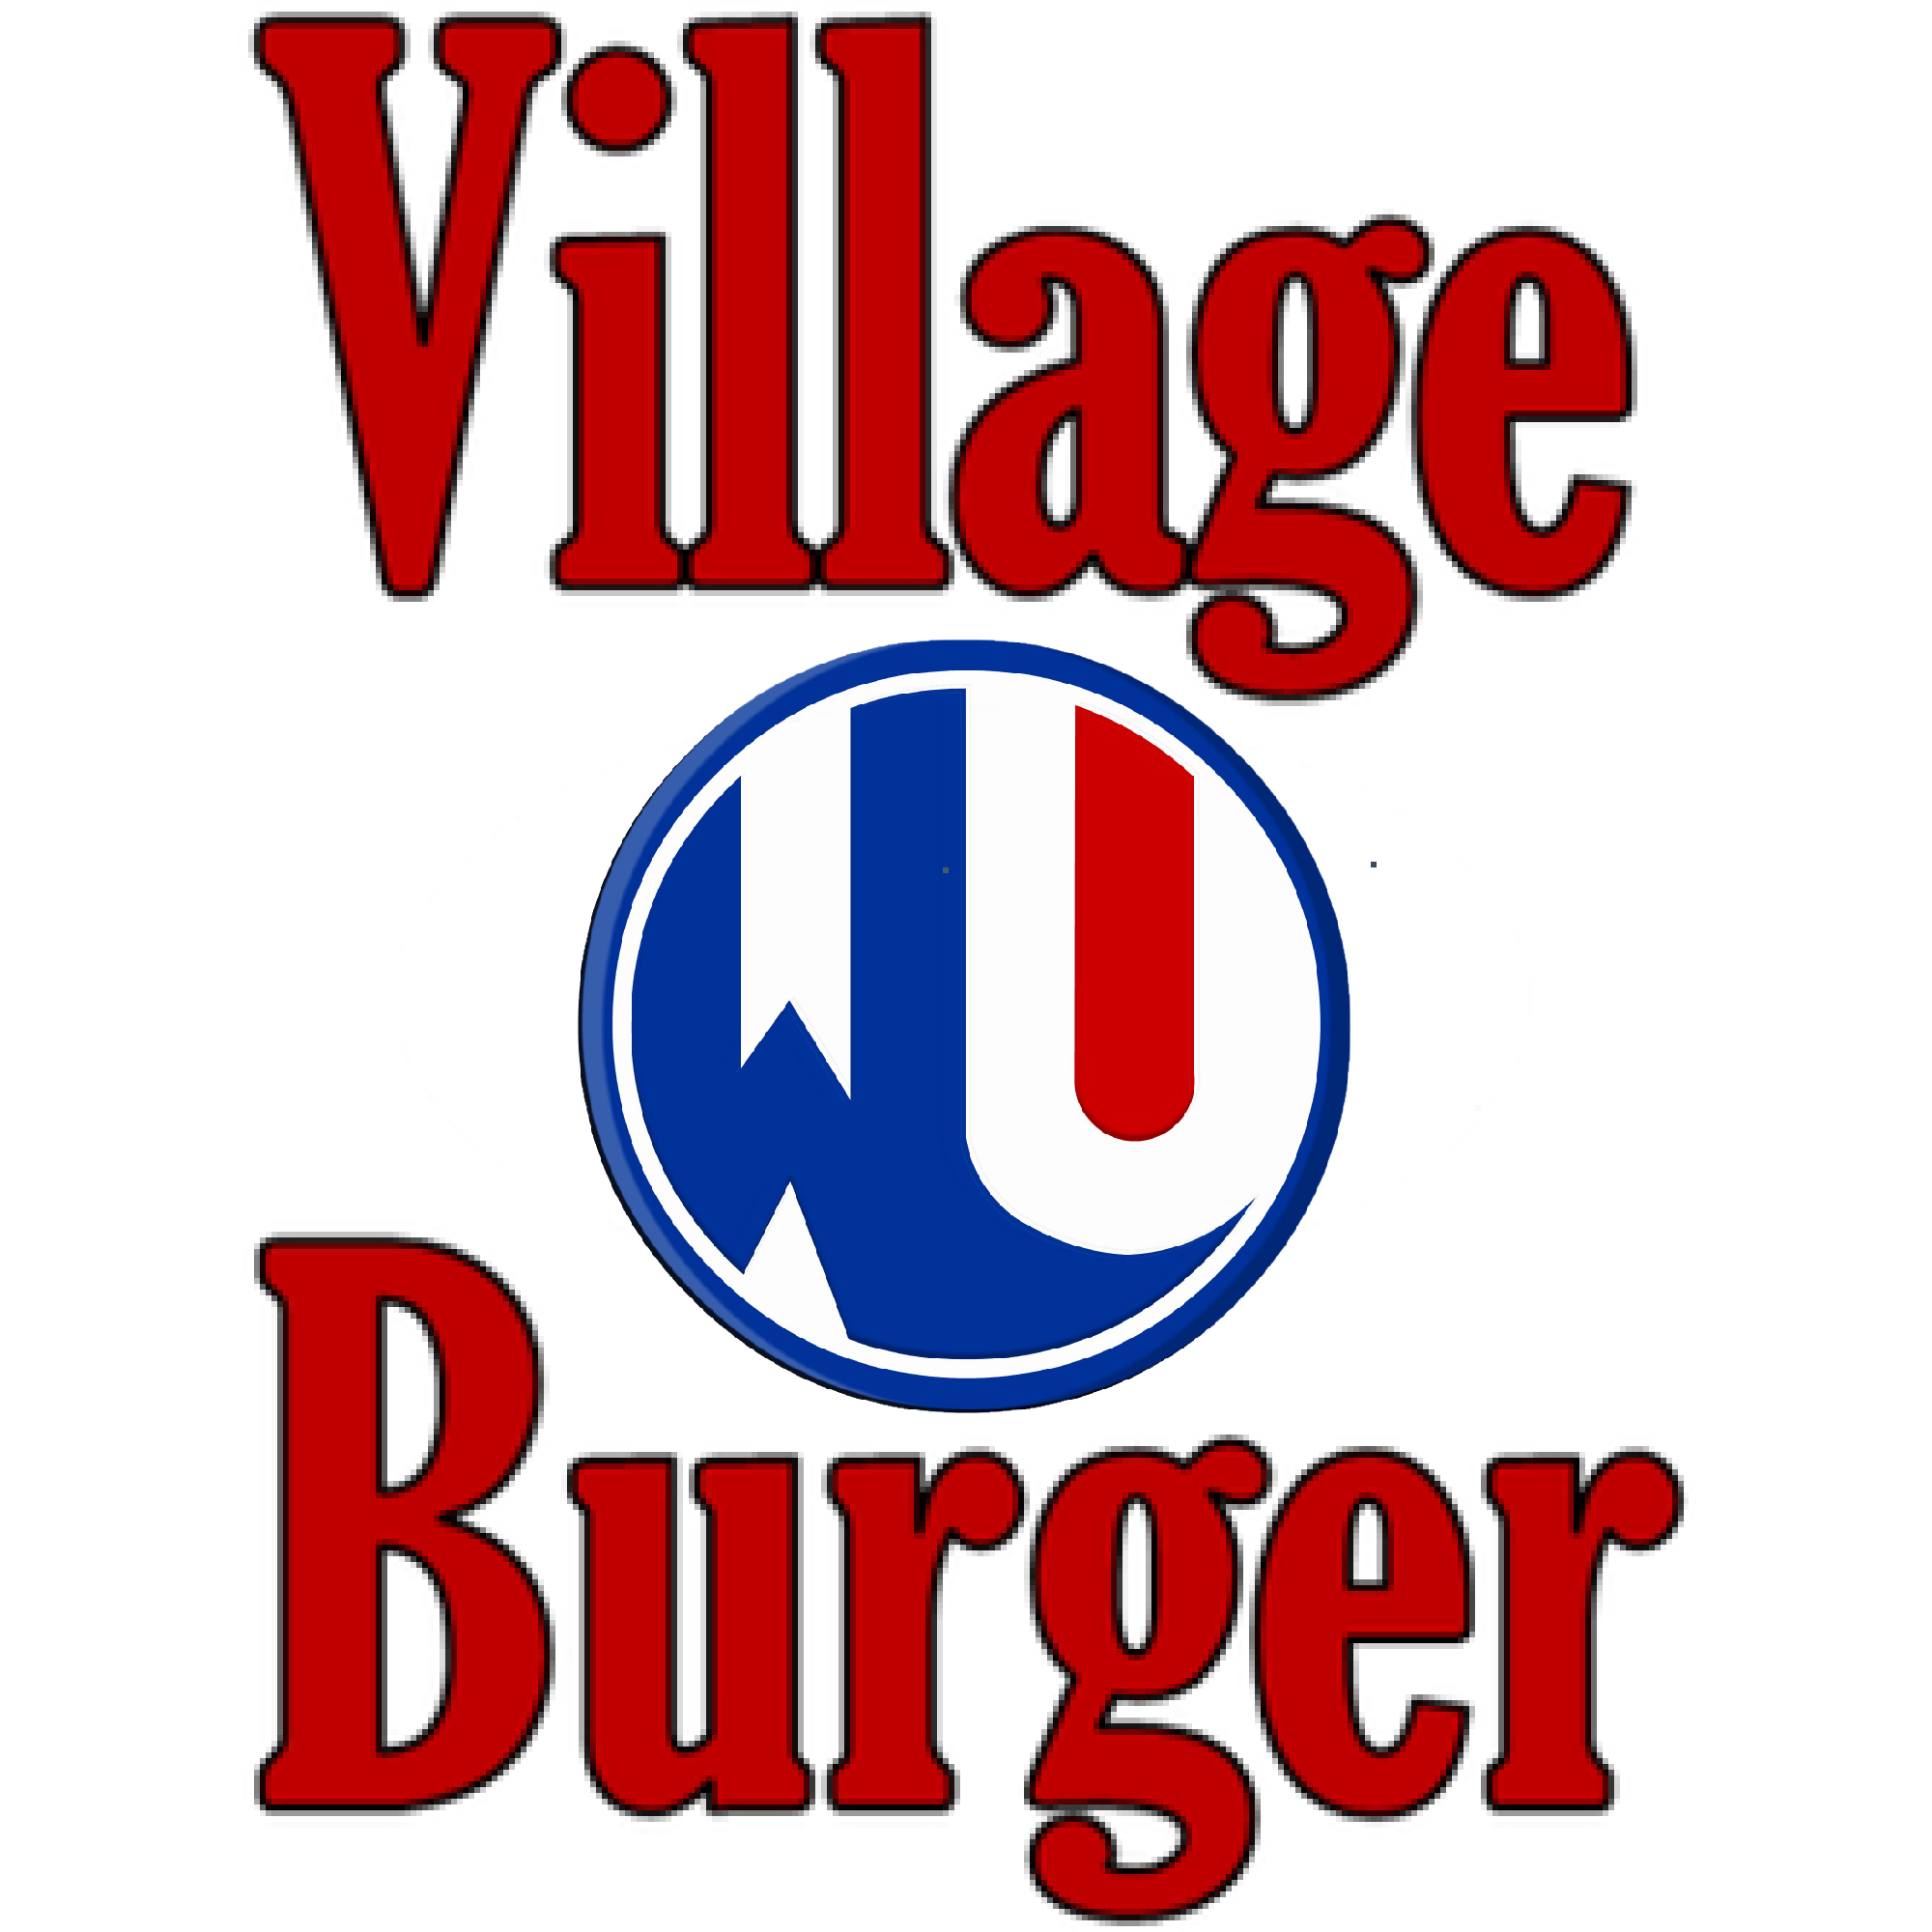 040 - Village Burger - Matt Gephardt and Ricardo Gonzalo